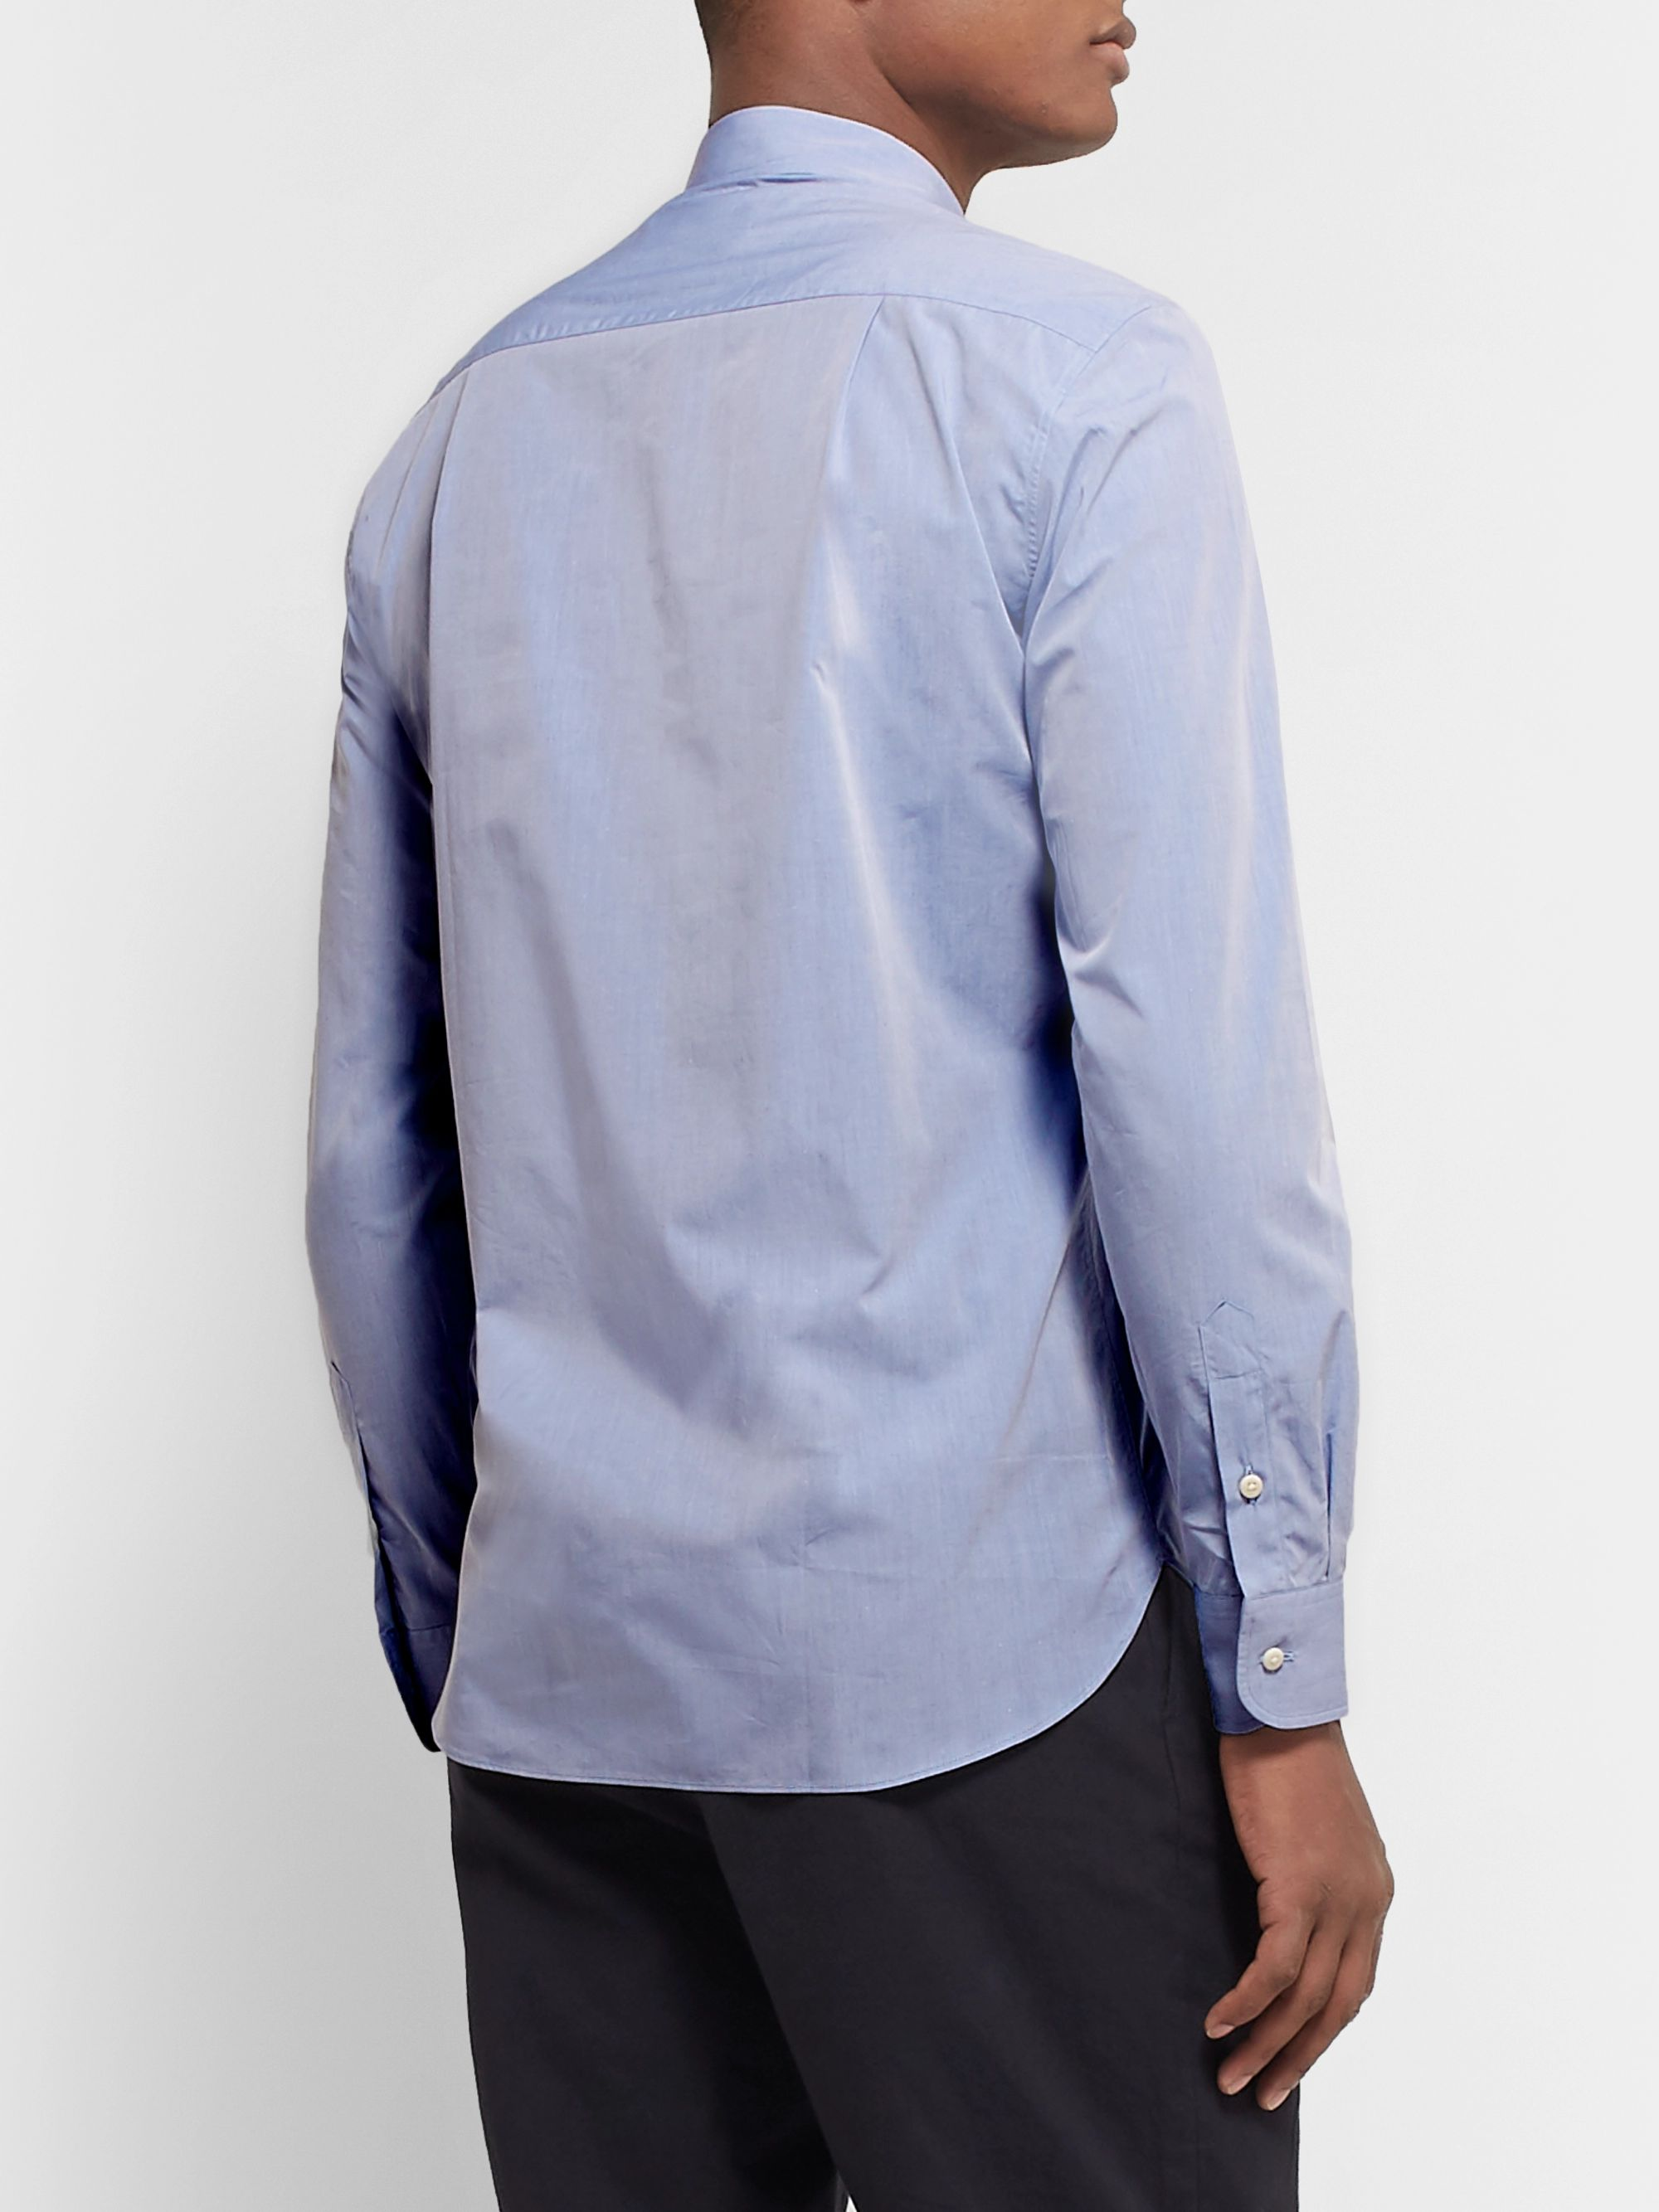 De Bonne Facture Slim-Fit Cotton-Poplin Shirt